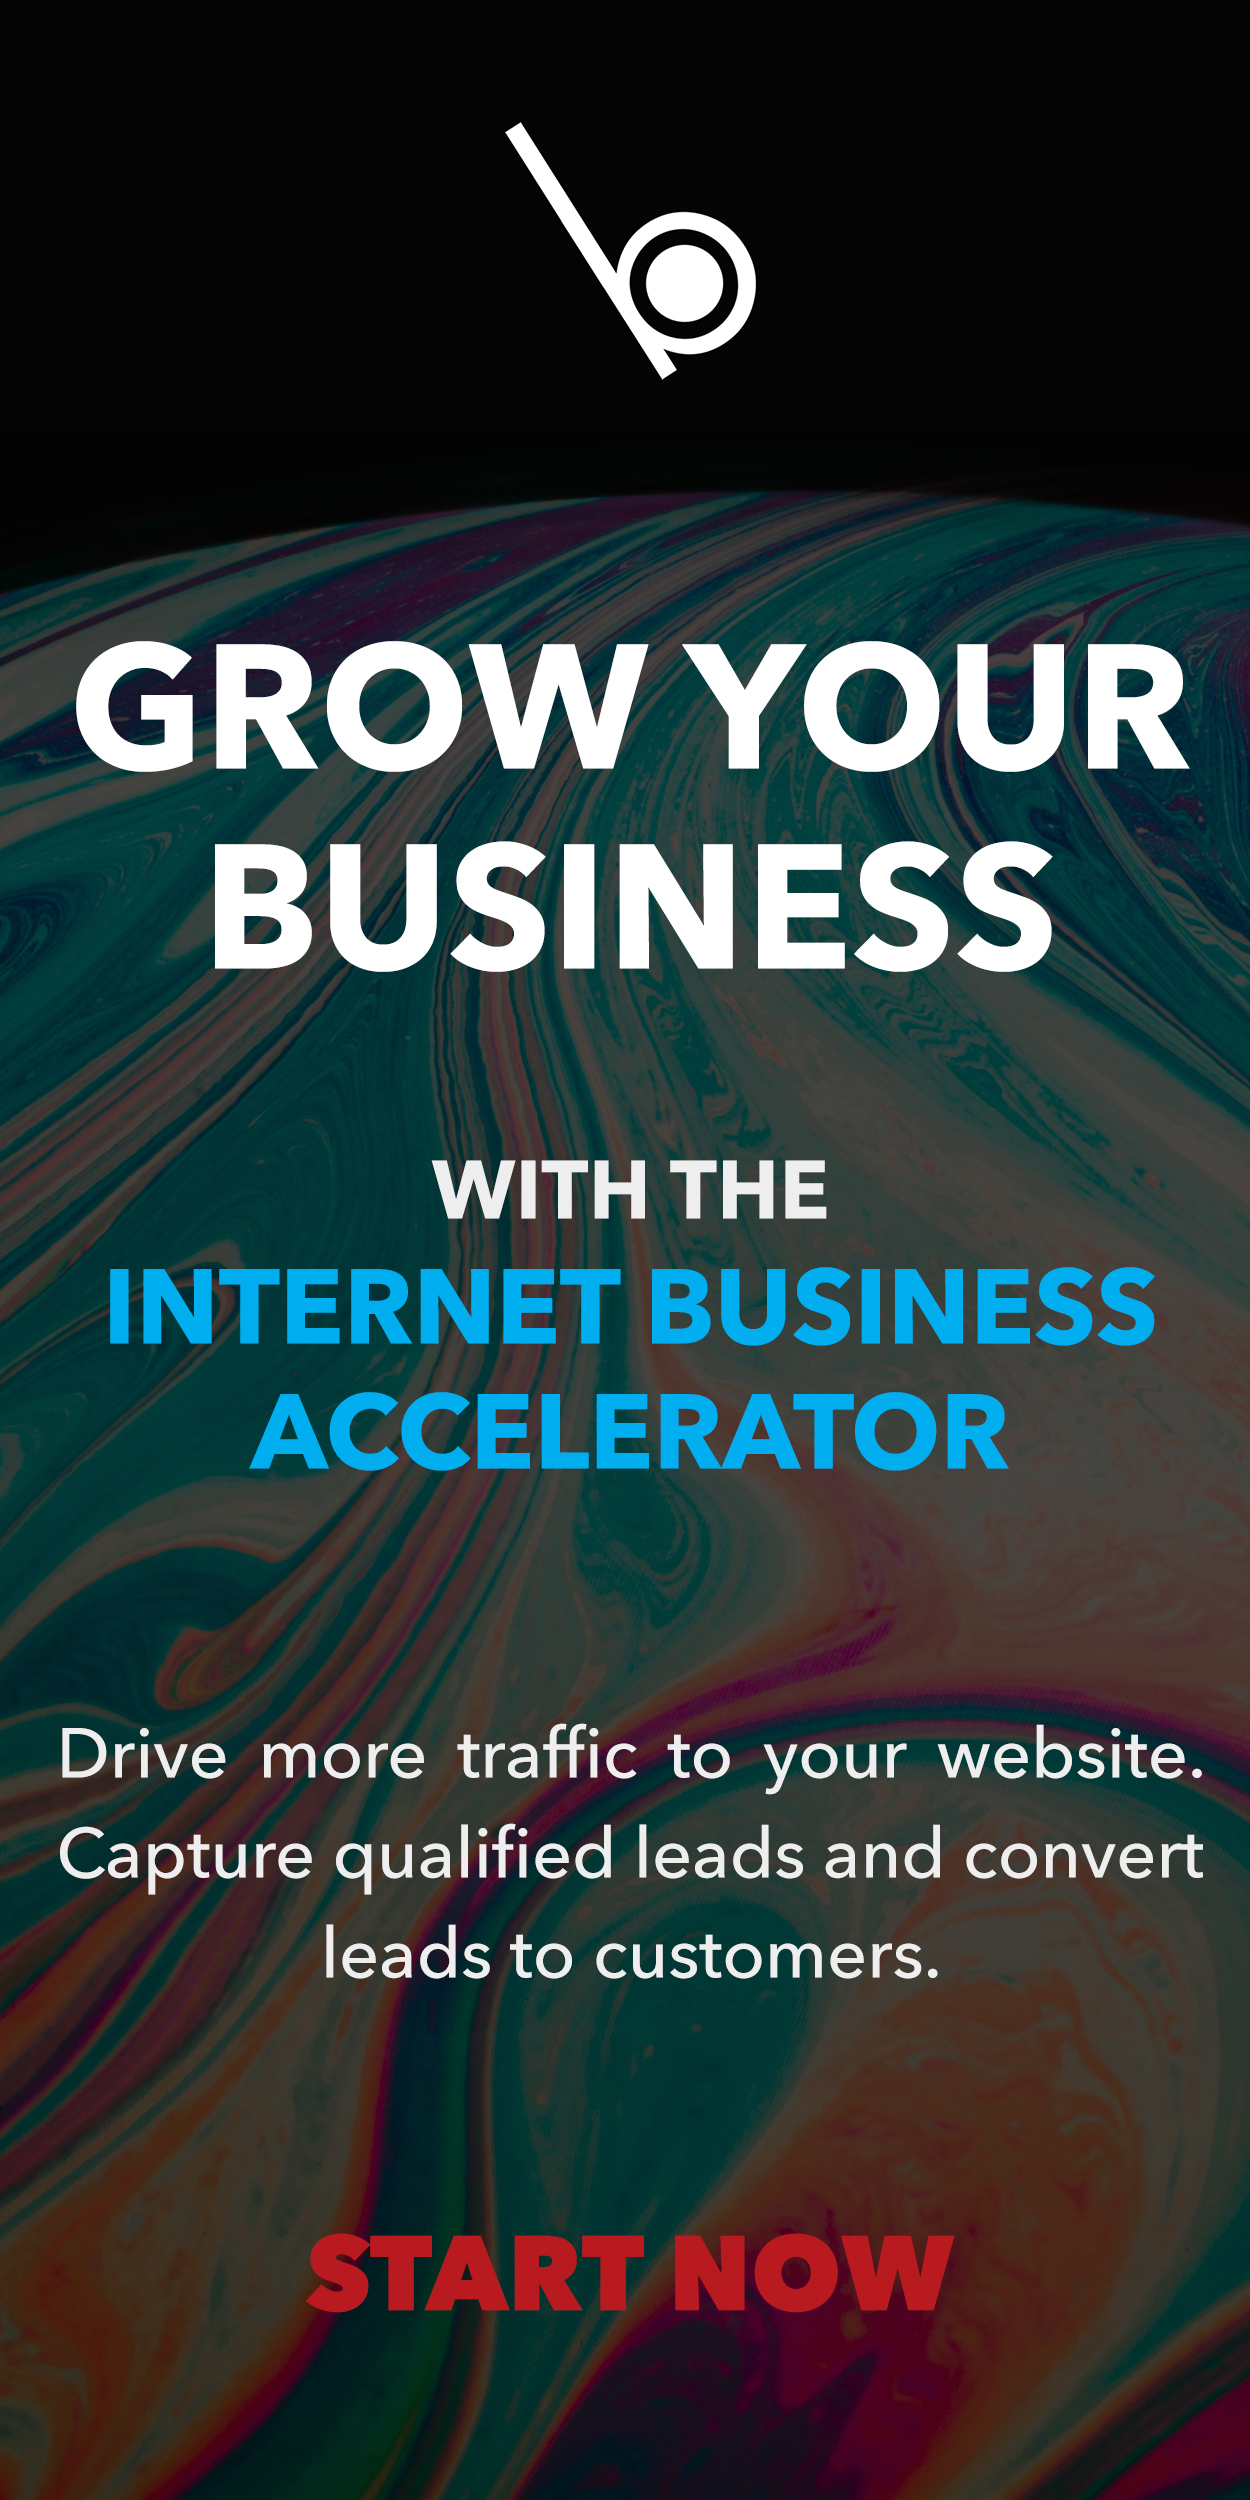 Whiteball Creative Solutions Online Advert Banner for the Internet Business Accelerator website services